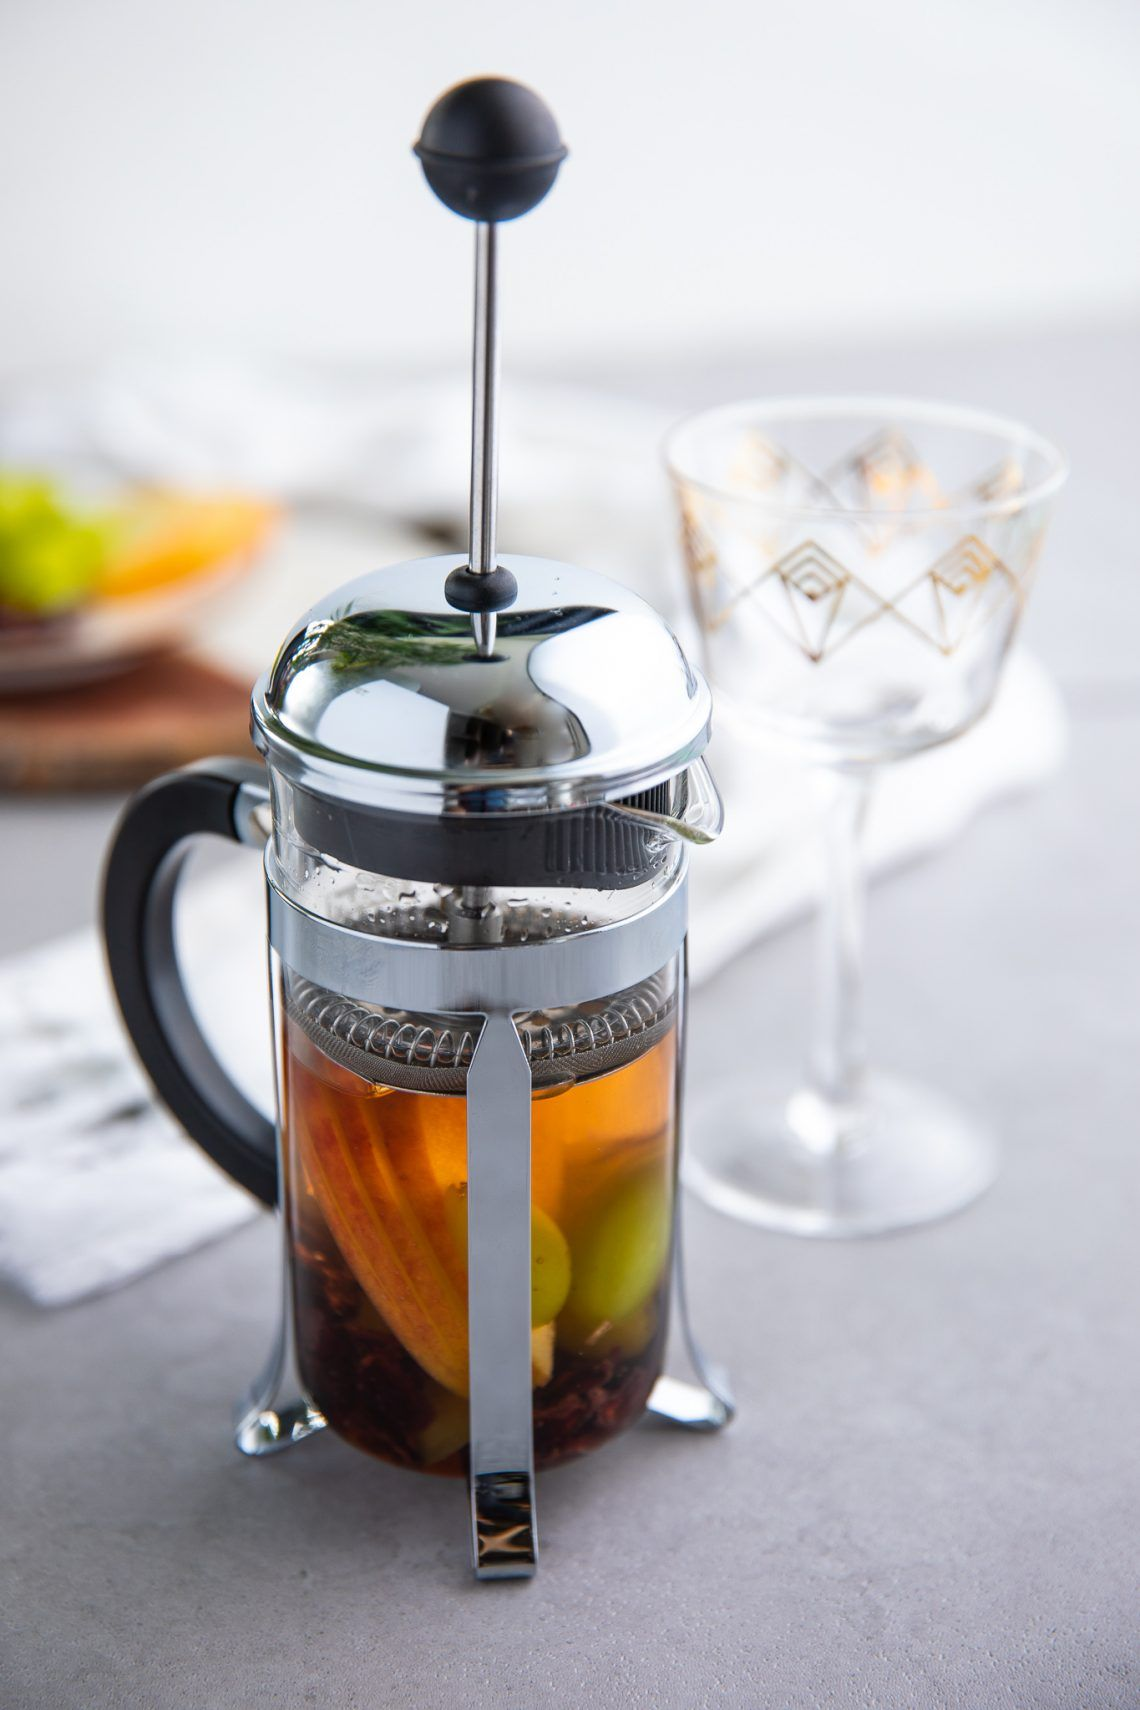 French prince liquid culture recipe in 2020 french